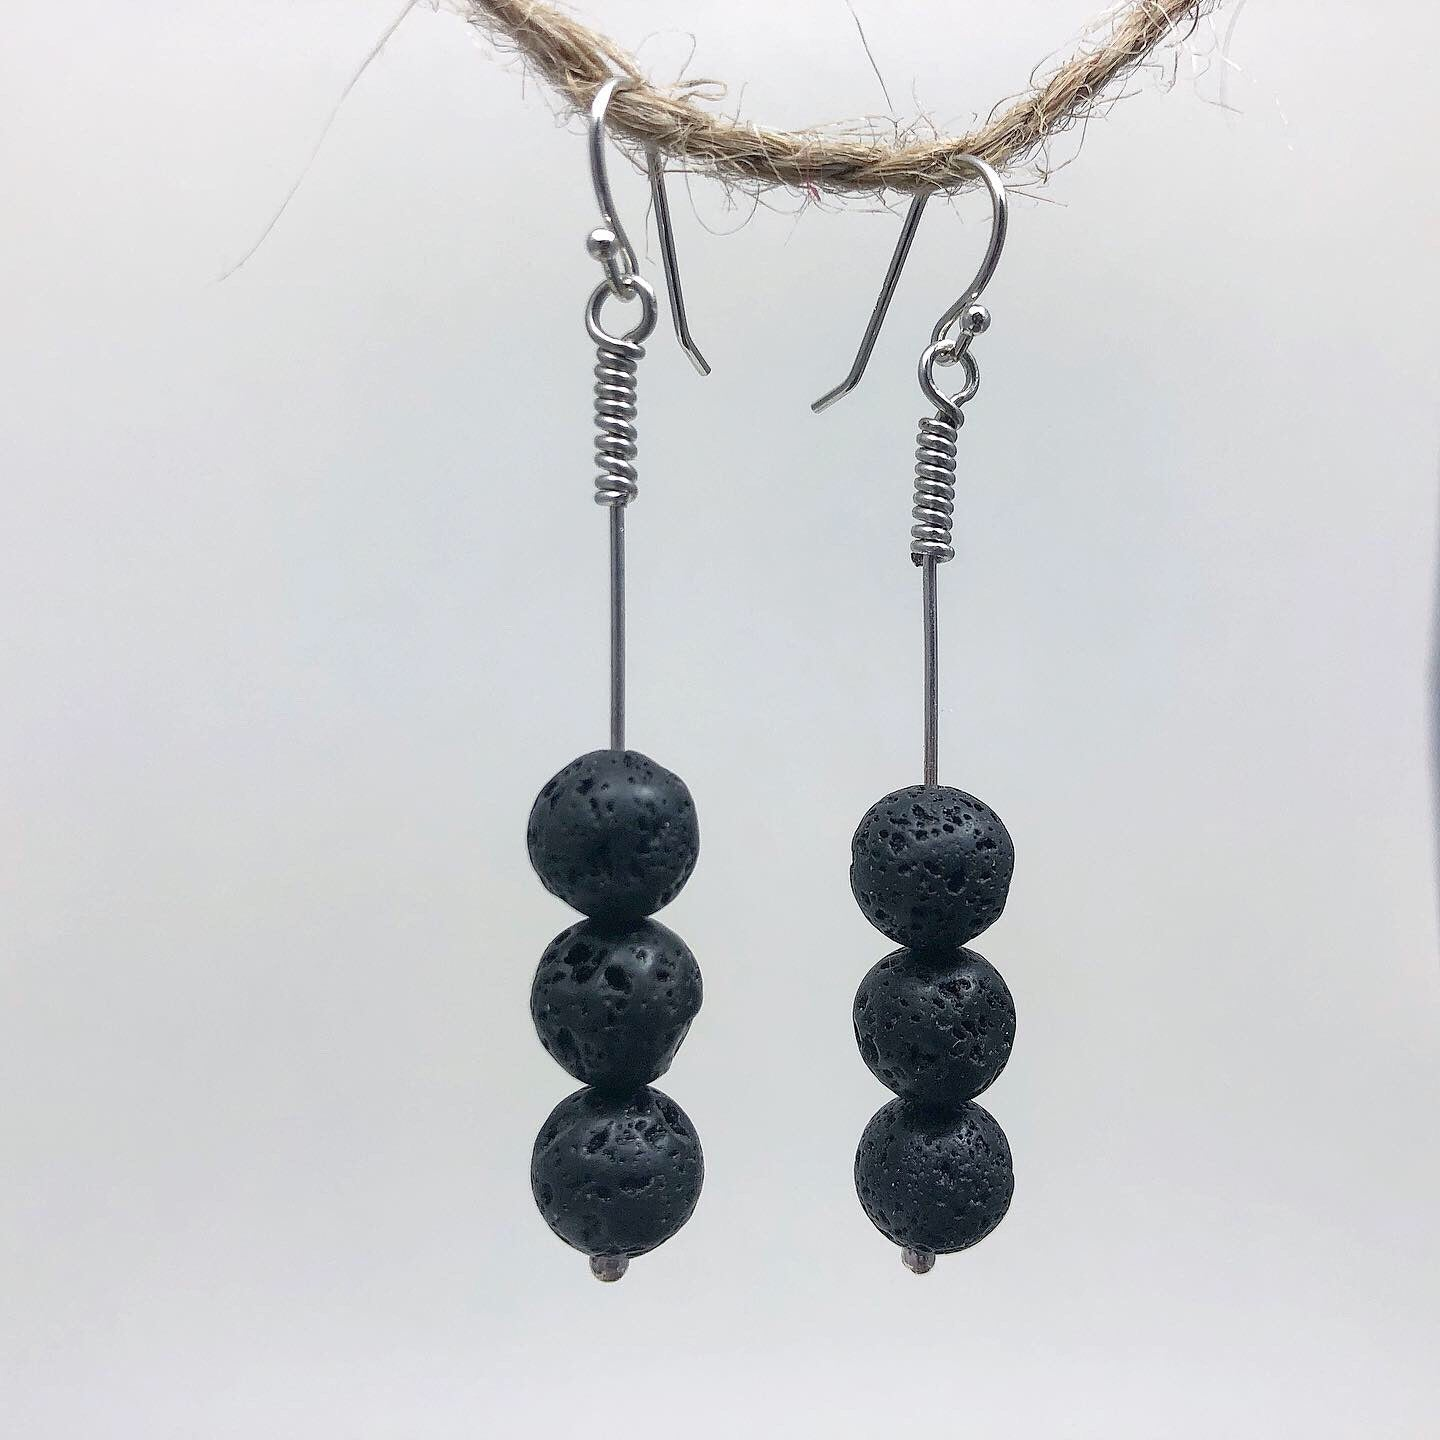 Lava Earrings for Essential Oils, 3 Bead Large